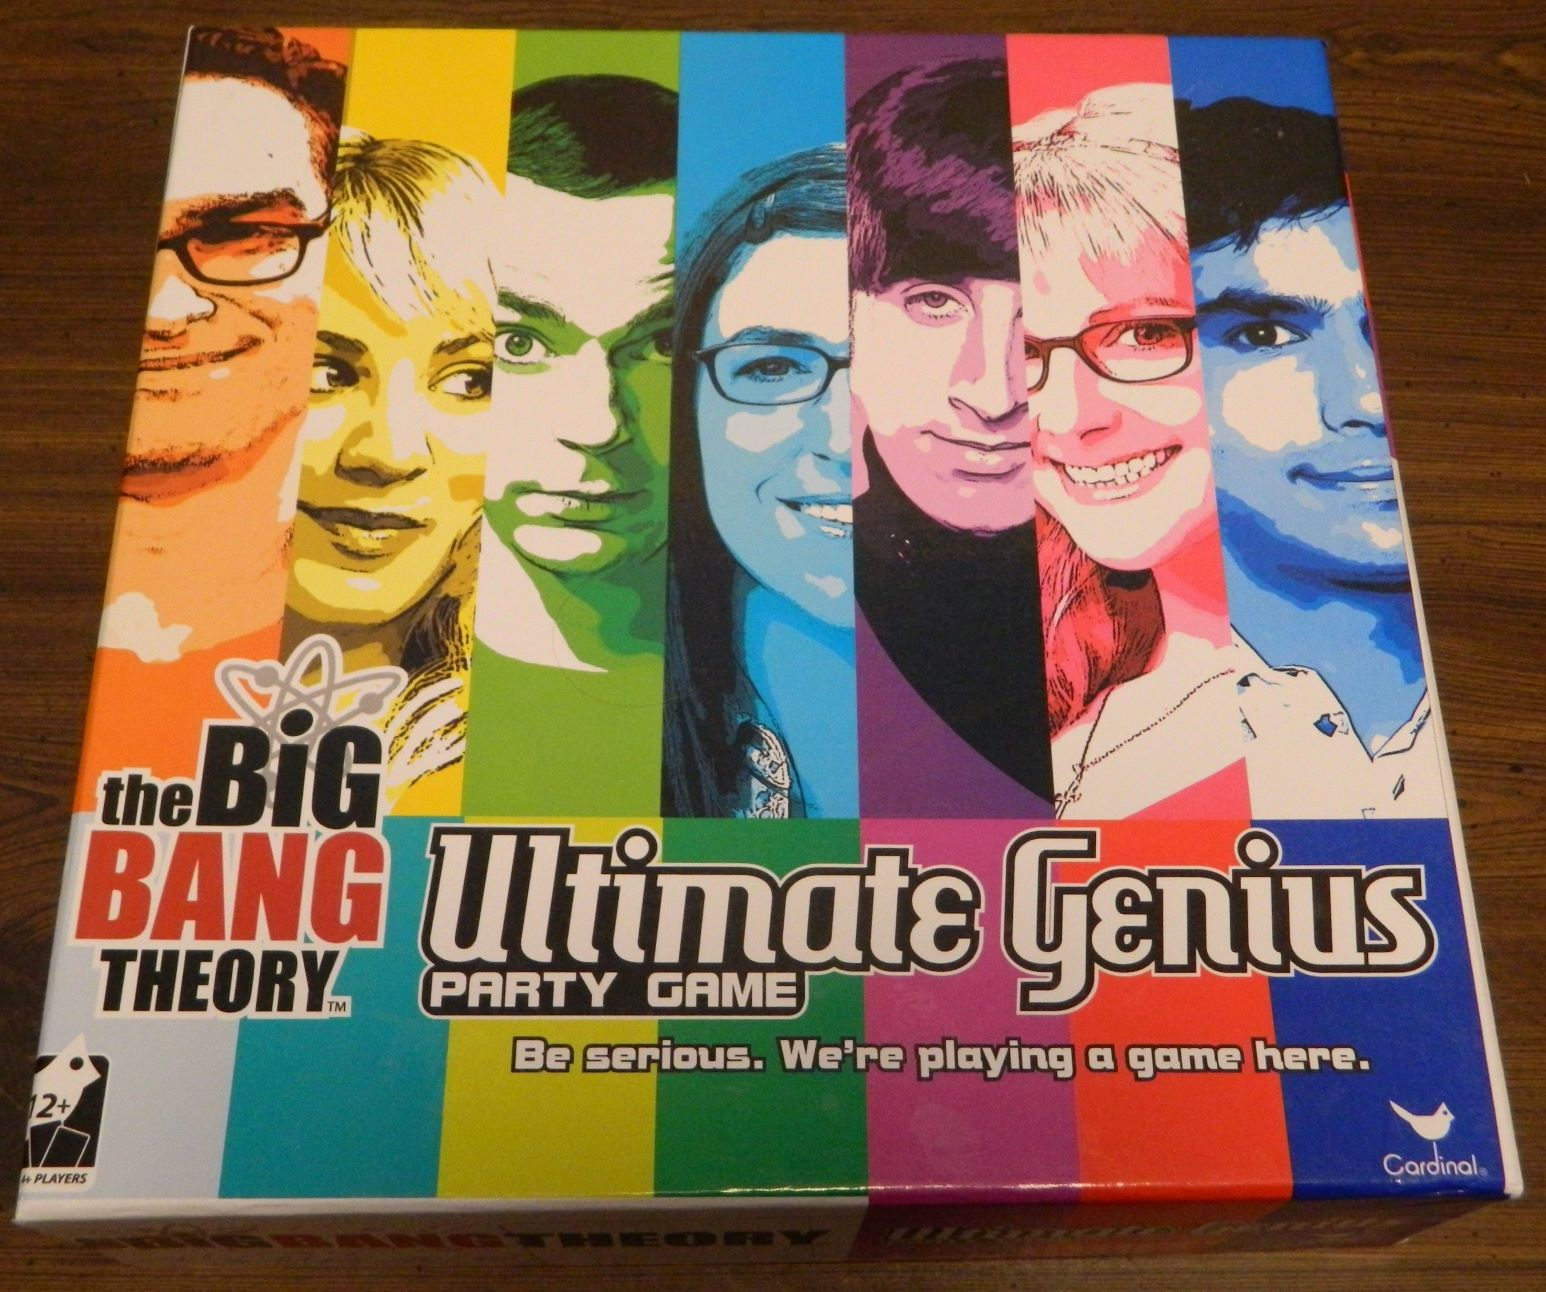 Box for The Big Bang Theory Ultimate Genius Party Game